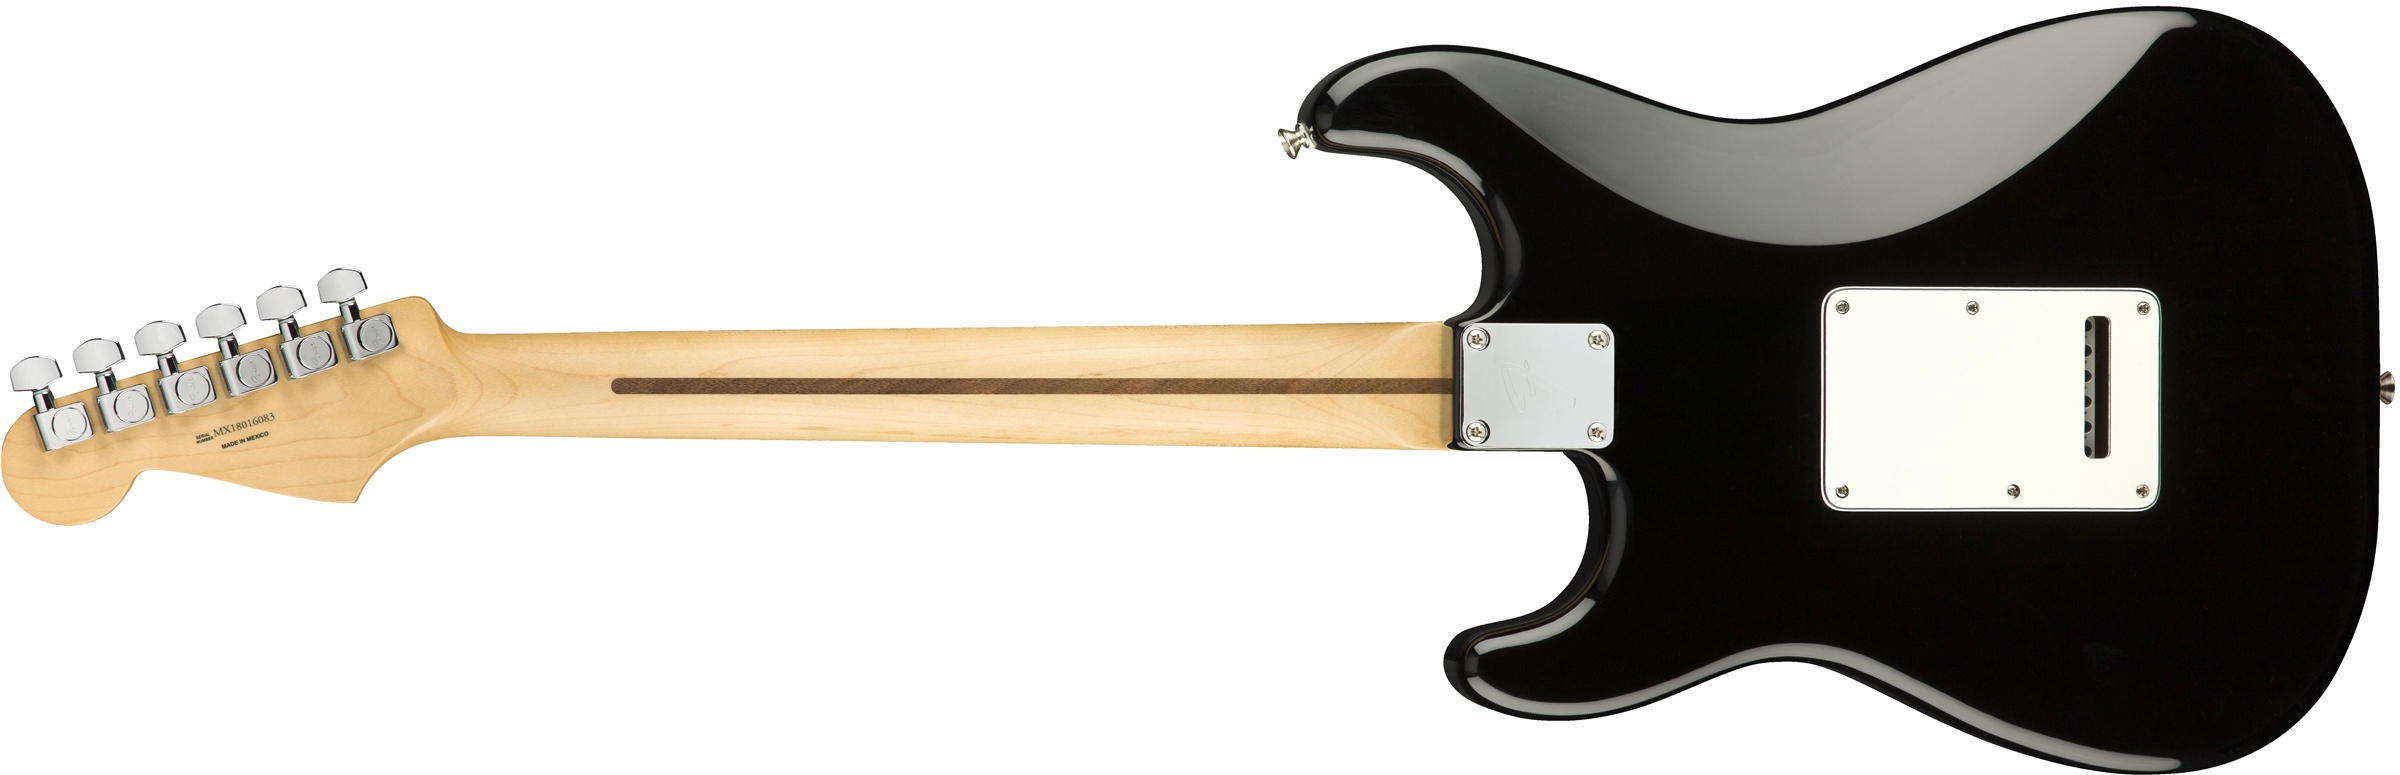 Player Stratocaster Black (Pau Ferro Fingerboard)背面画像